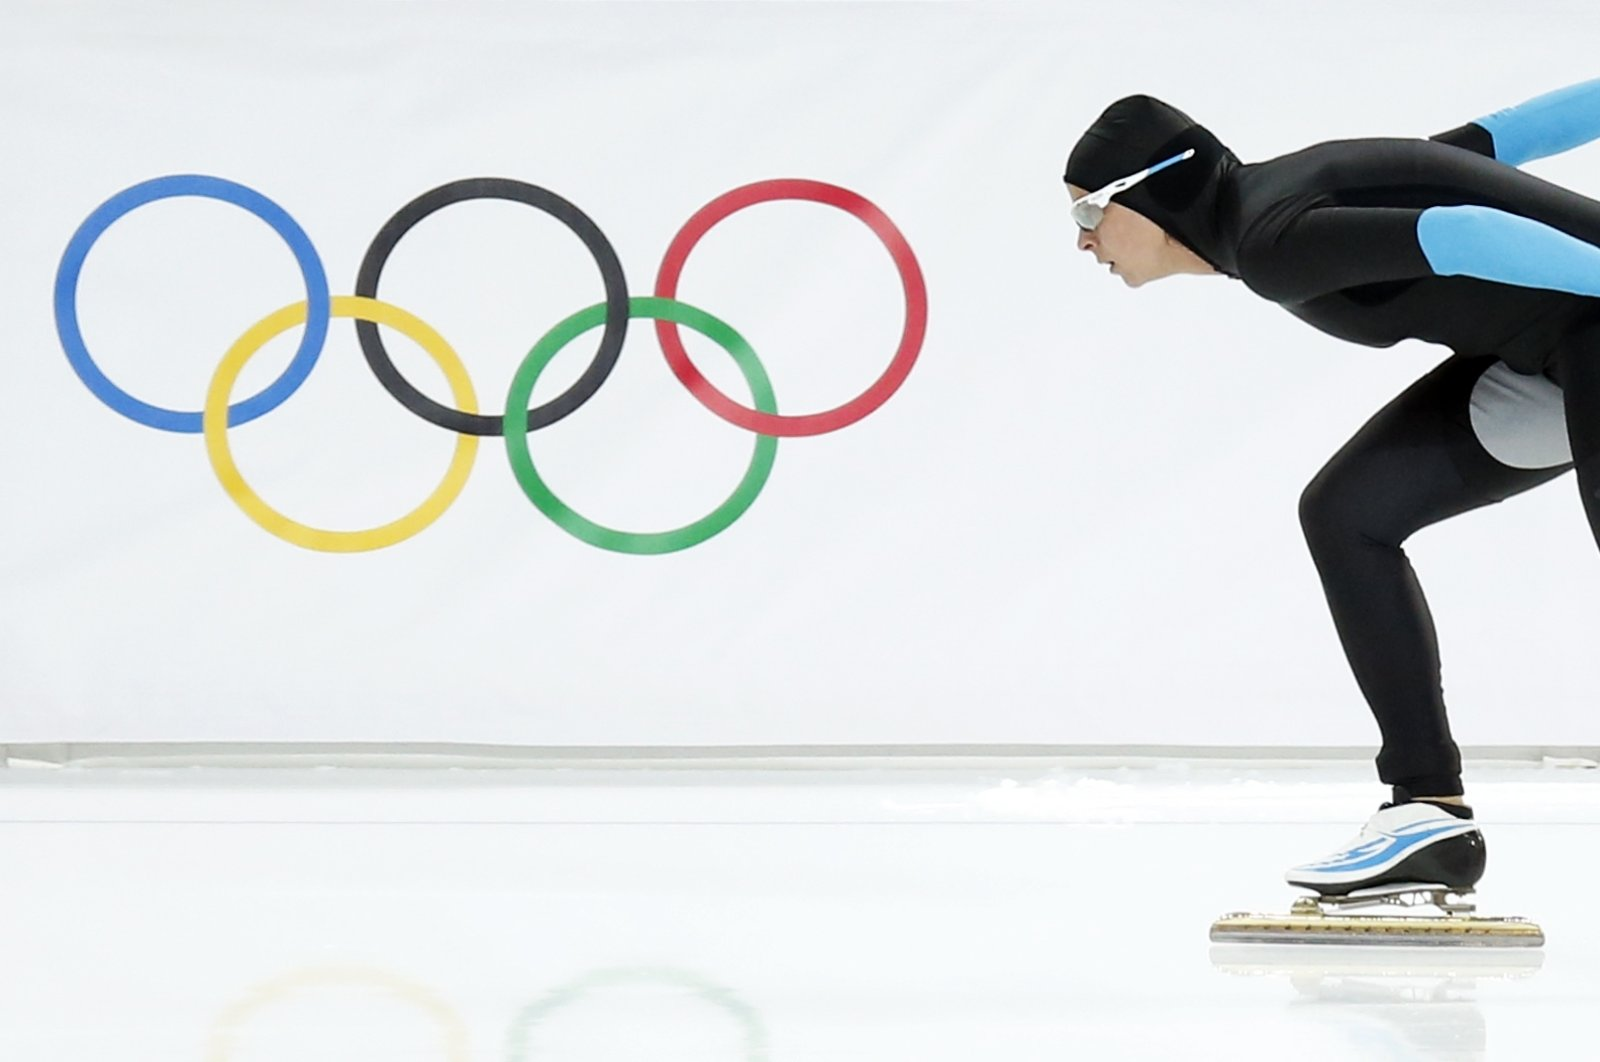 Brittany Bowe of the United States competes in the women's 1,500-meter speedskating race at Adler Arena Skating Center during the Winter Olympics in Sochi, Russia, Feb. 16, 2014. (AP Photo)